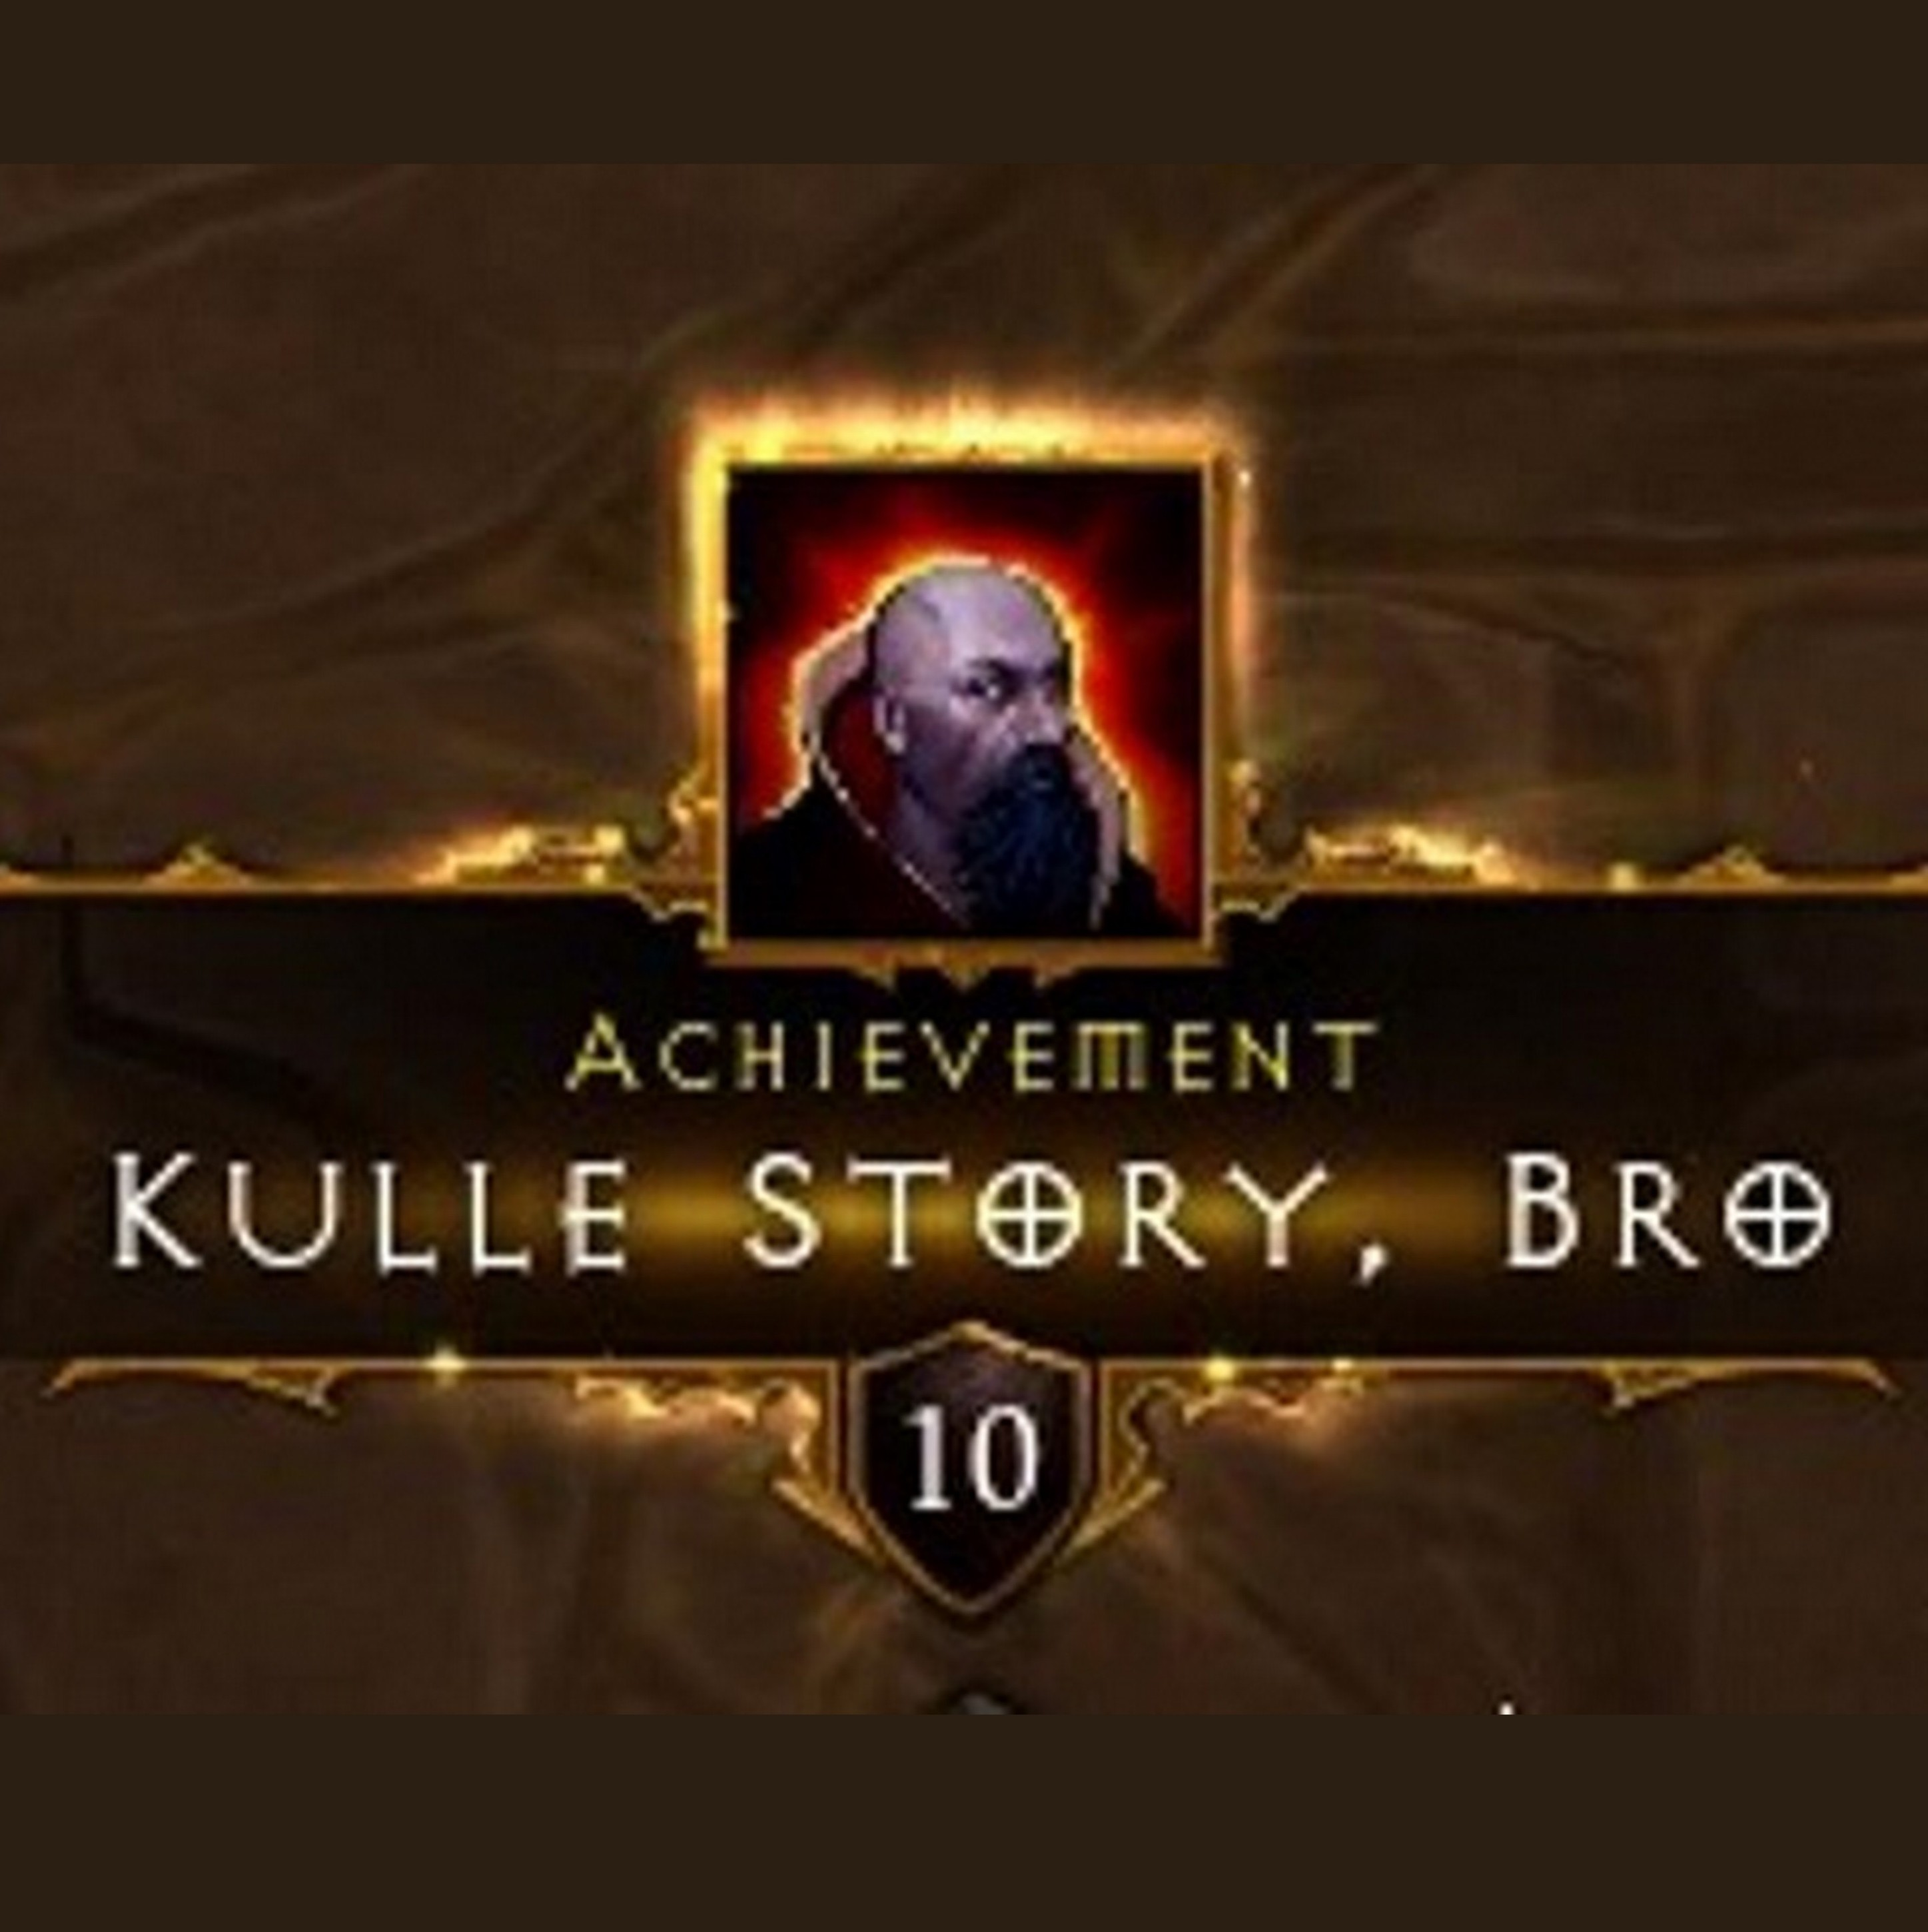 Kulle Story Bro - A Diablo 3 Podcast Episode 11